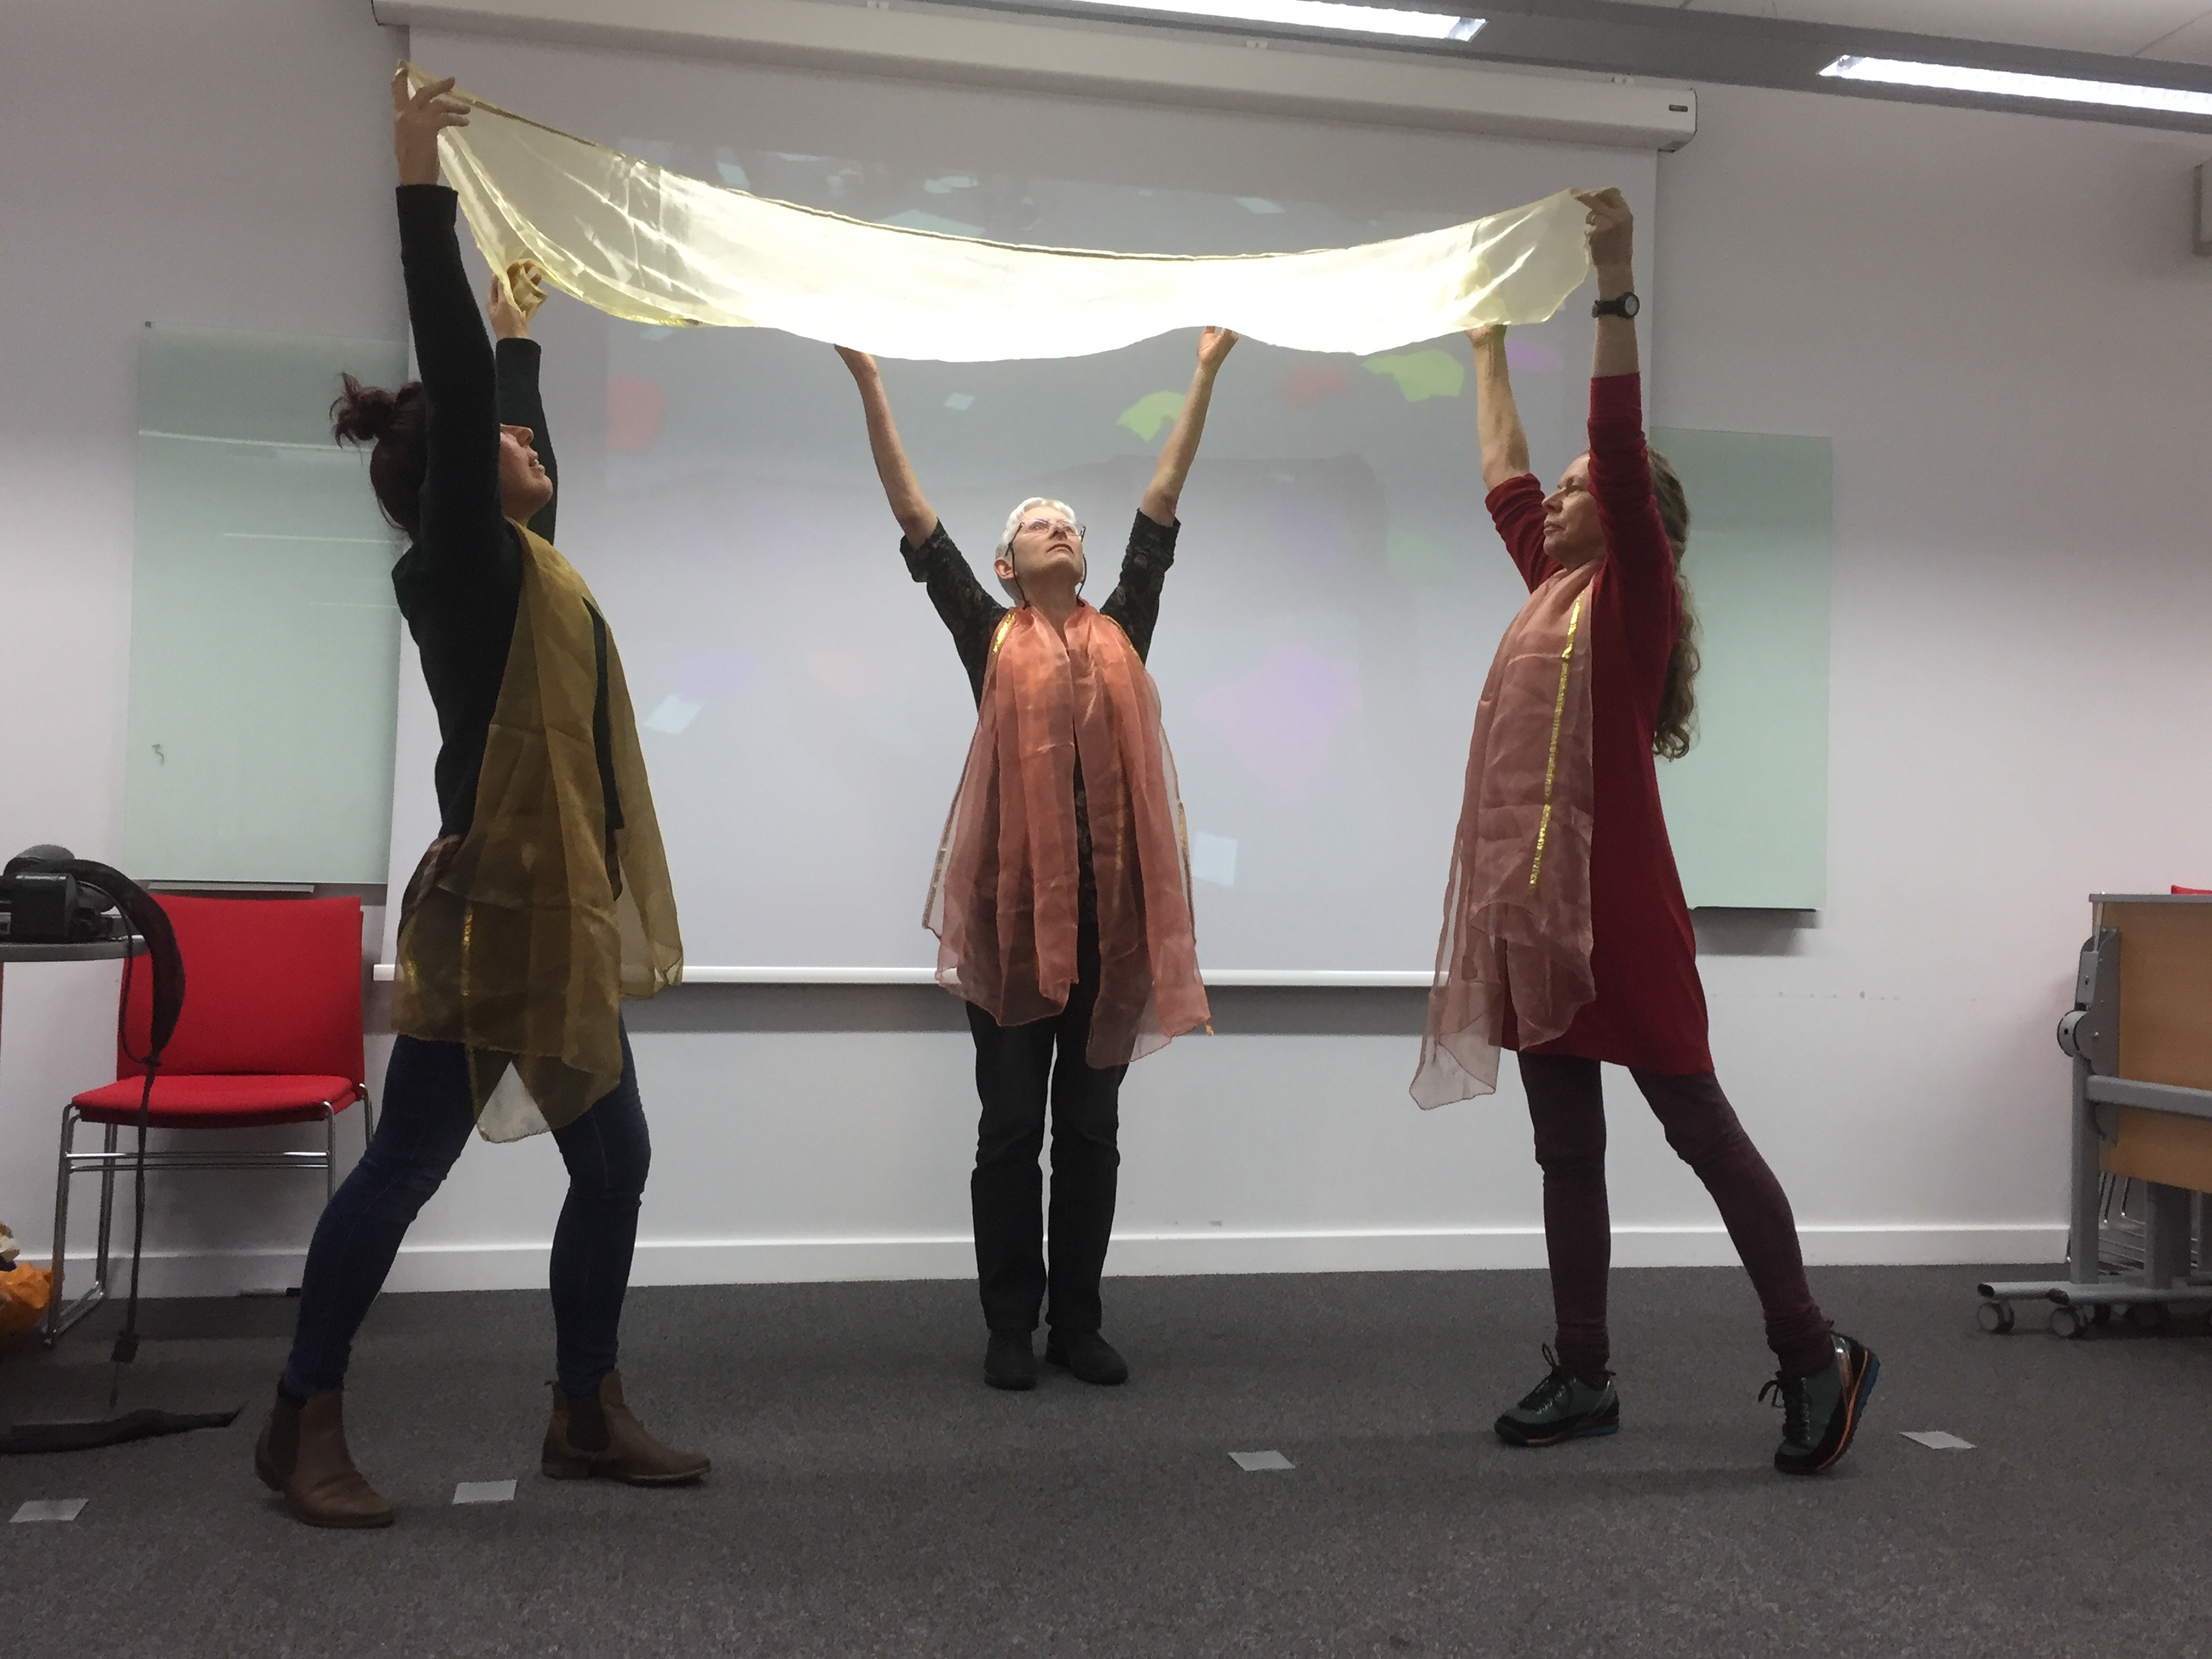 Trent Dementia image: photo of Dance and Dementia project